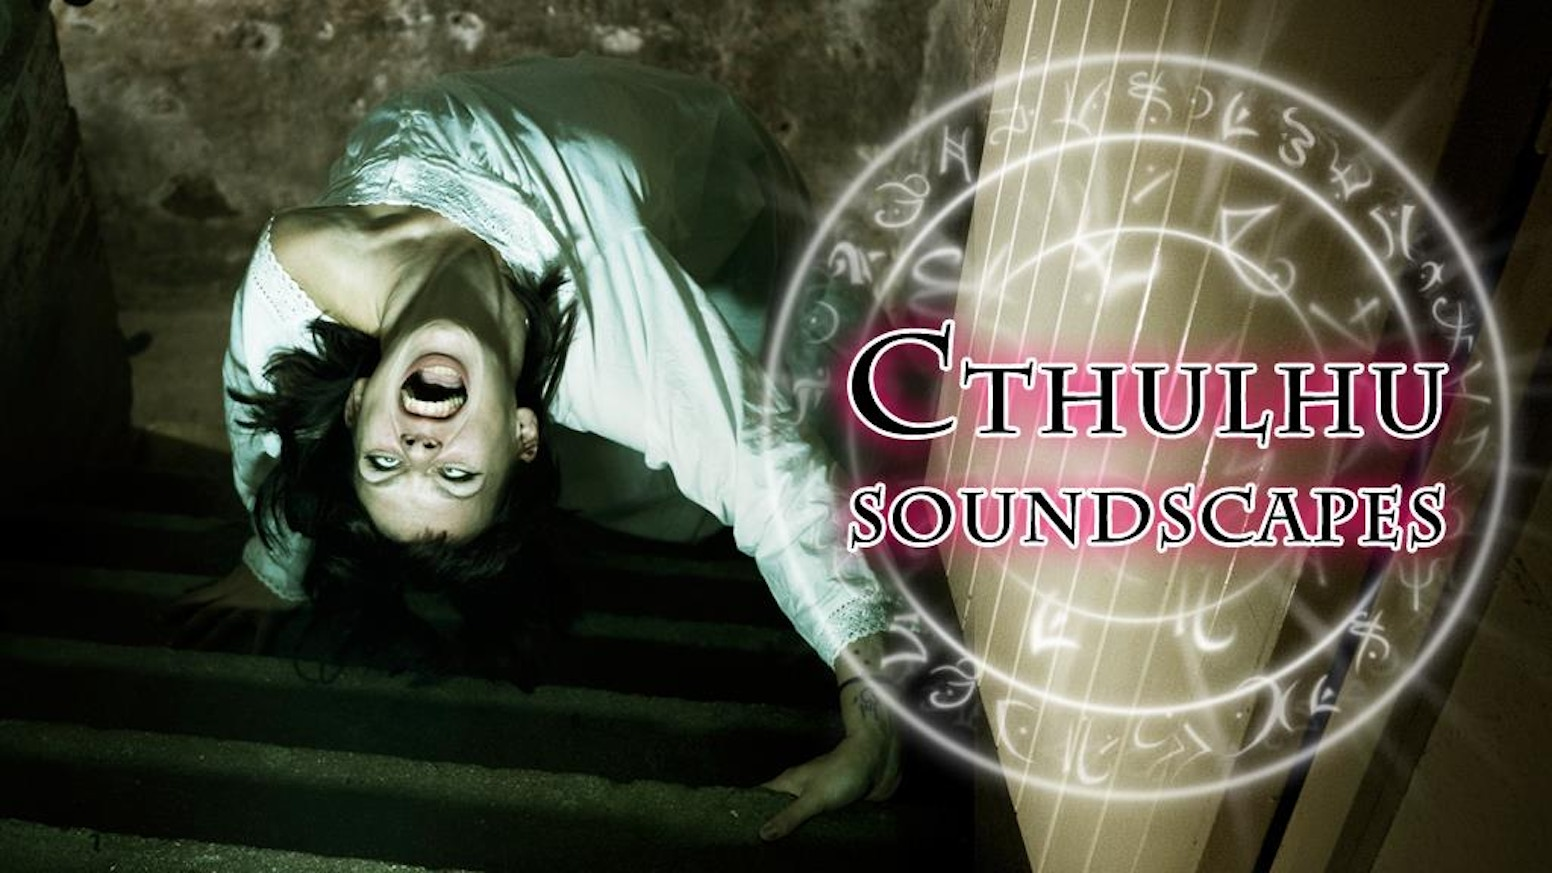 Cthulhu Soundscapes Hell Pack Soundscapes. Use for roleplaying, board games or even LARP. 66 tracks on Three volumes plus extras.